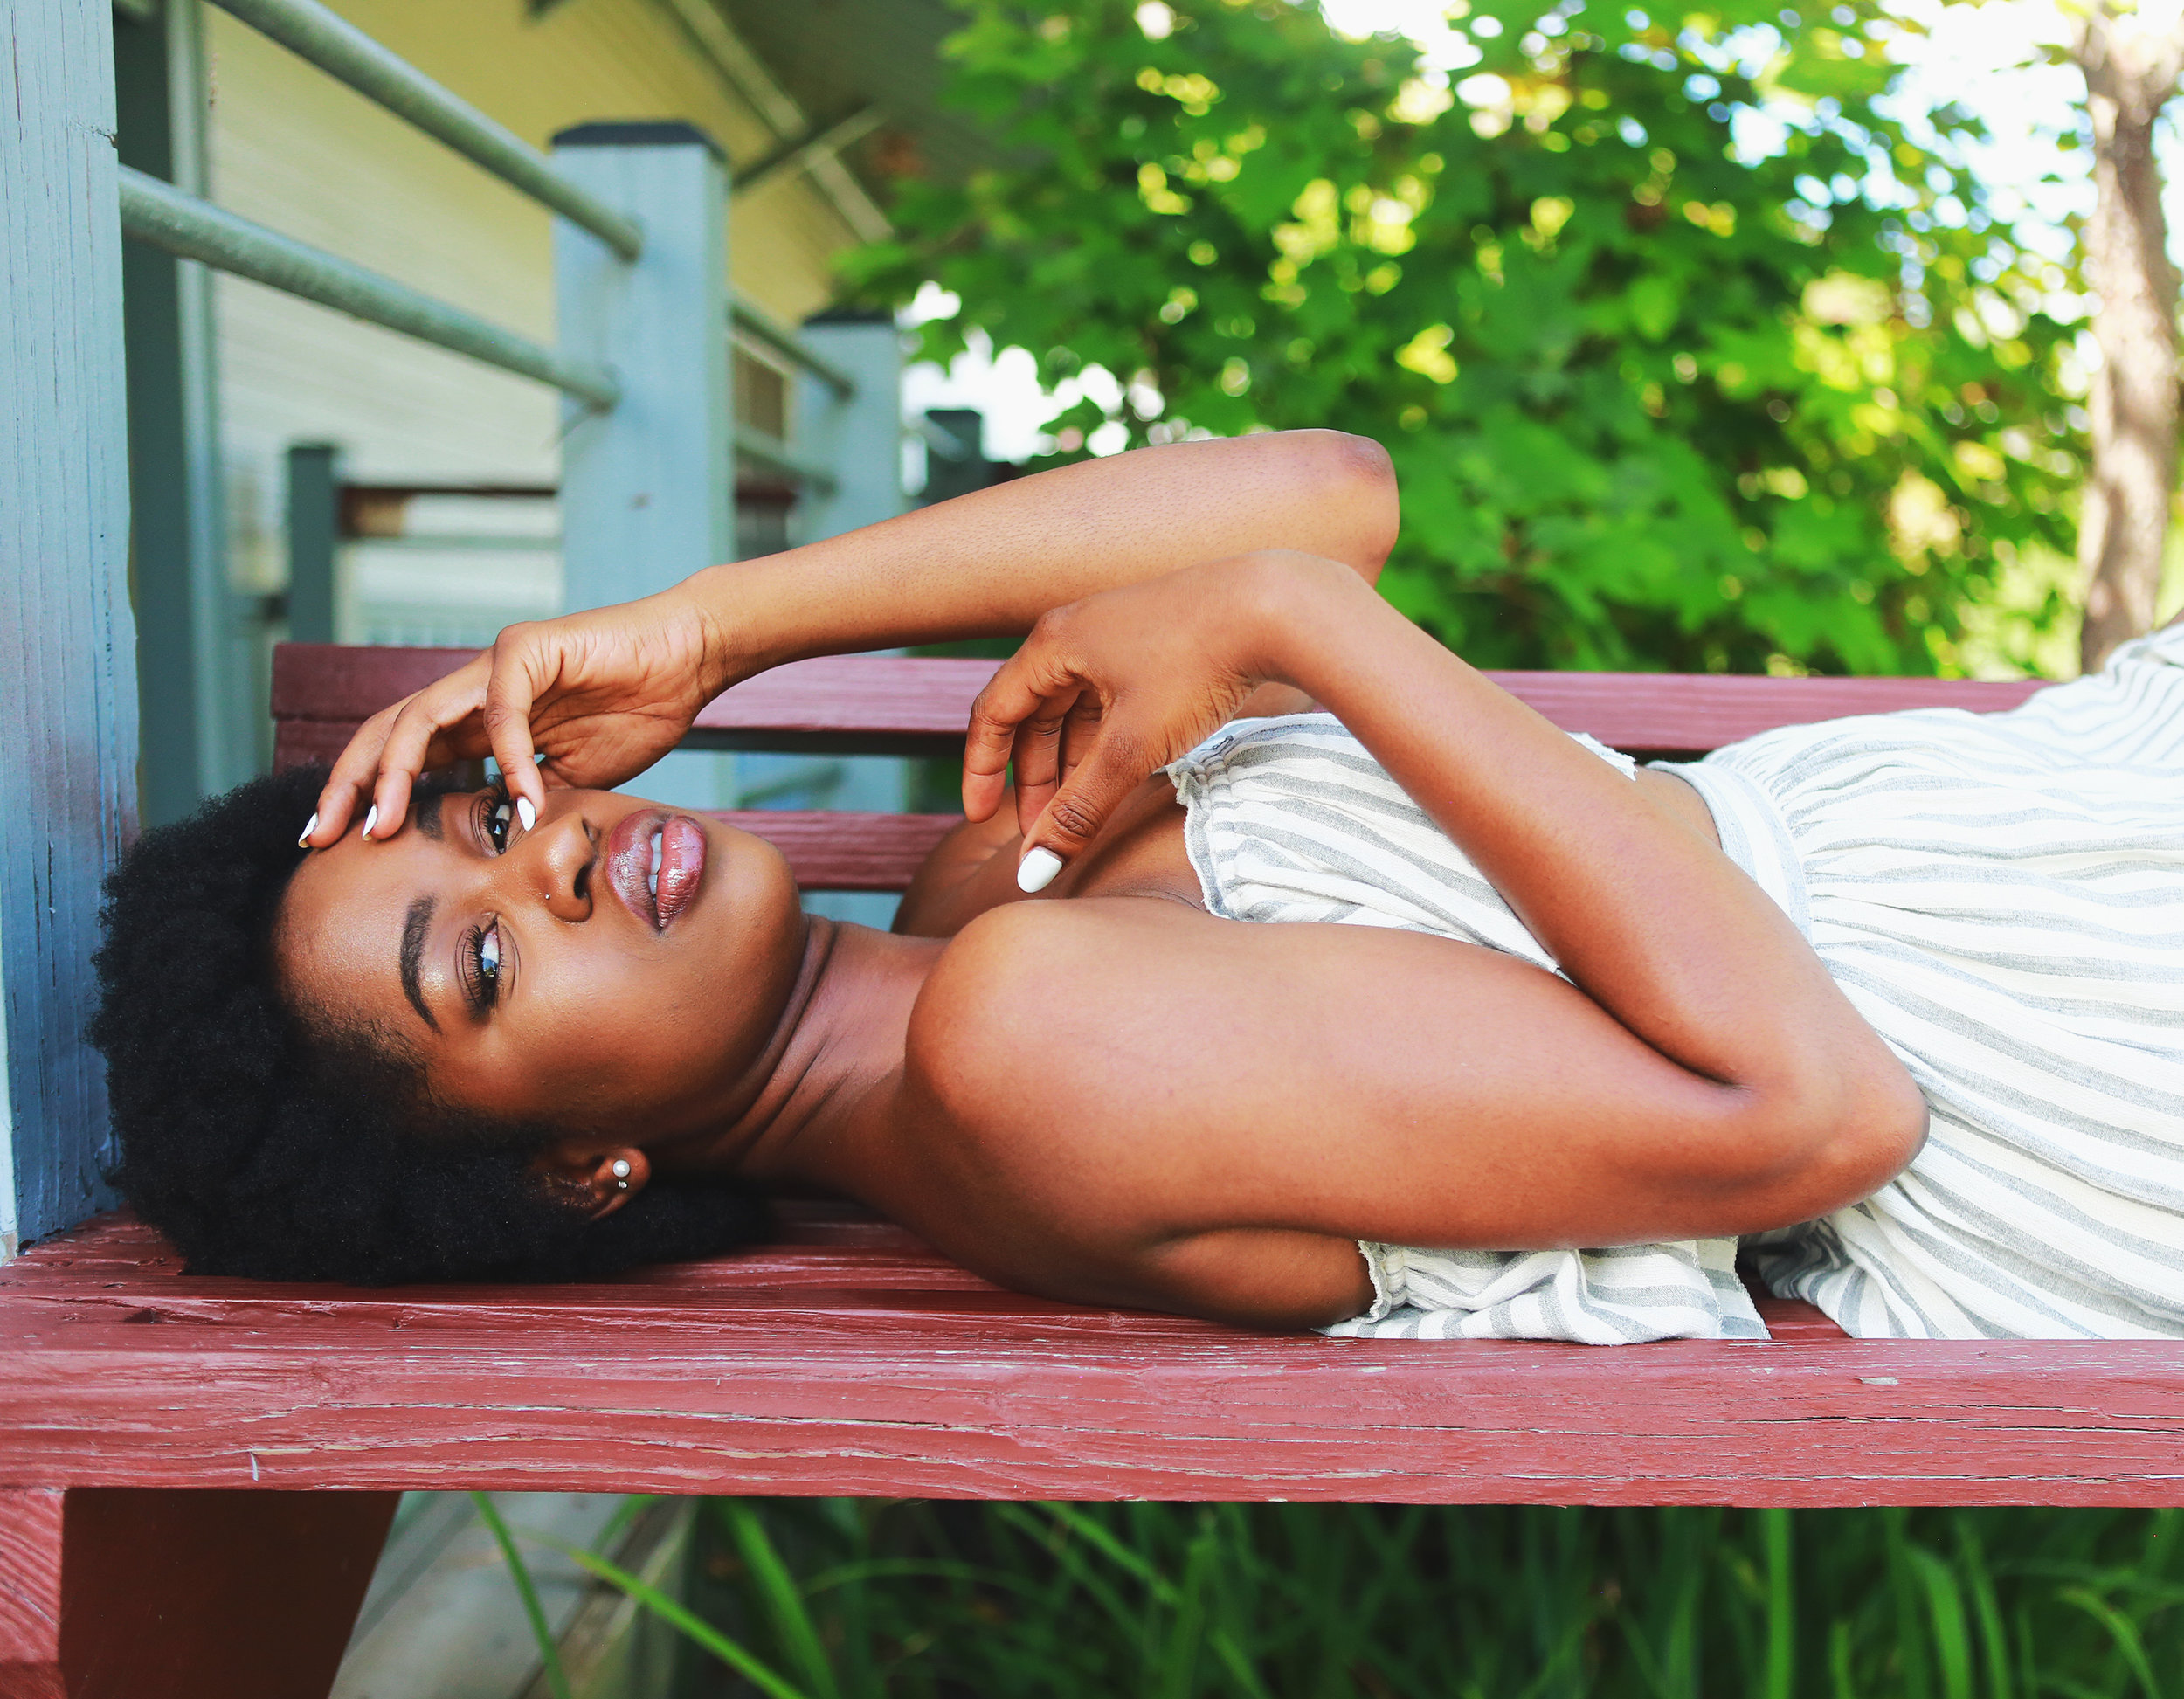 Canva - Woman Lying on Brown Wooden Bench.jpg